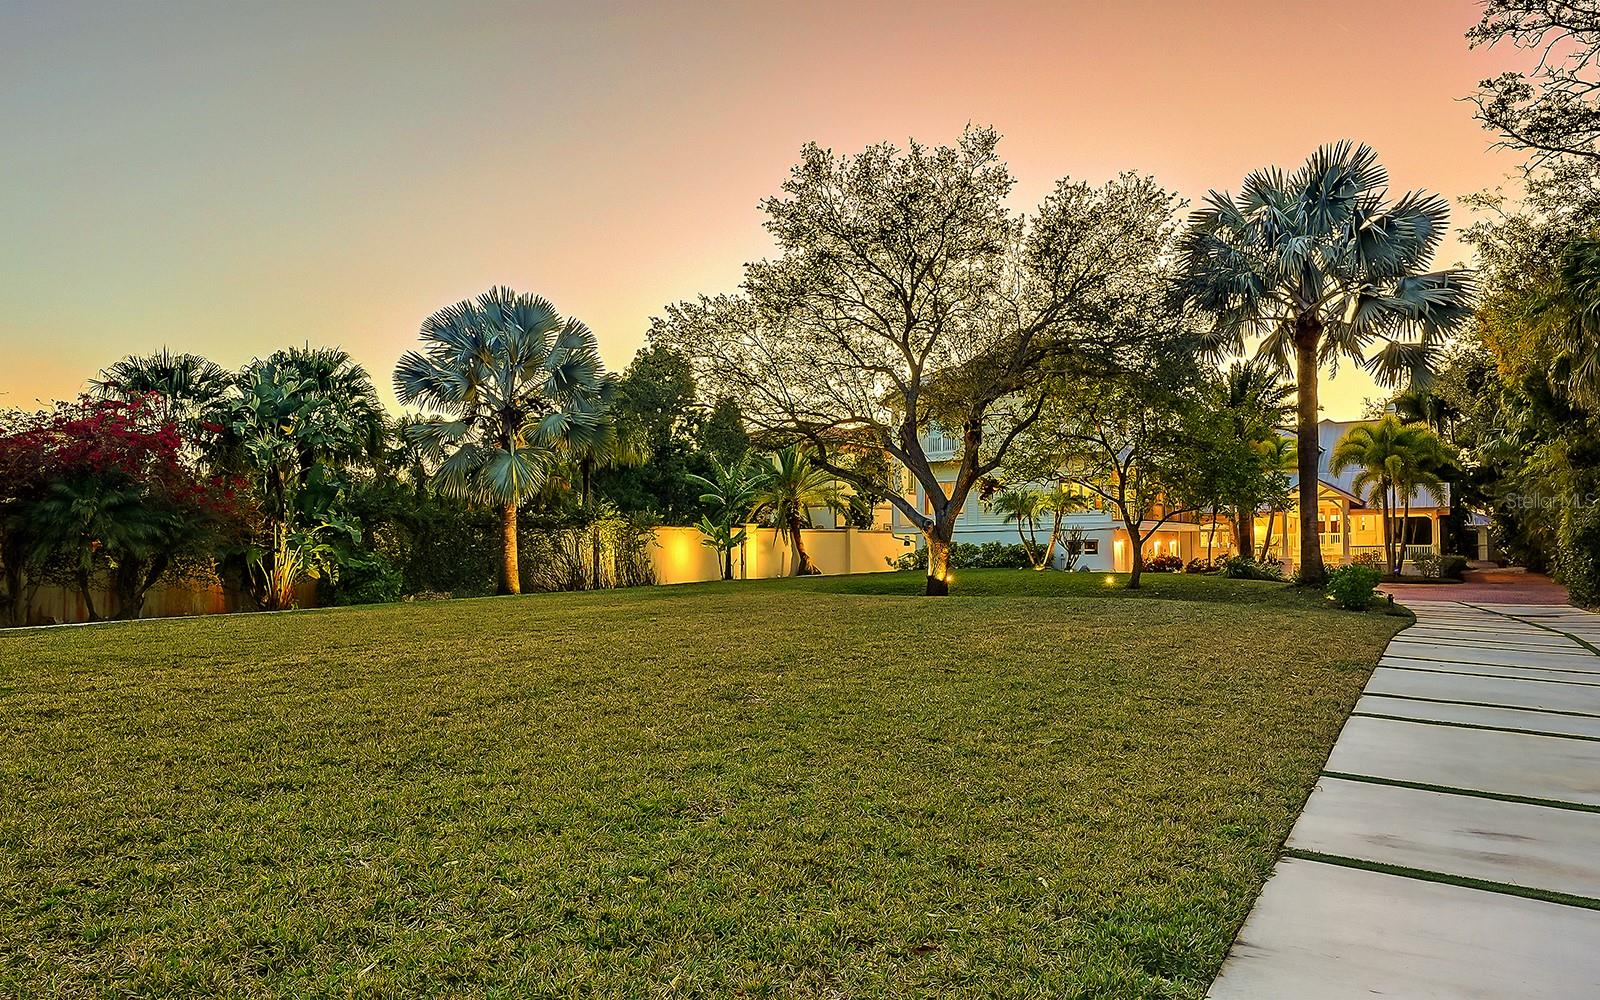 Single Family Home for sale at 1400 Ladue Ln, Sarasota, FL 34231 - MLS Number is A4491567